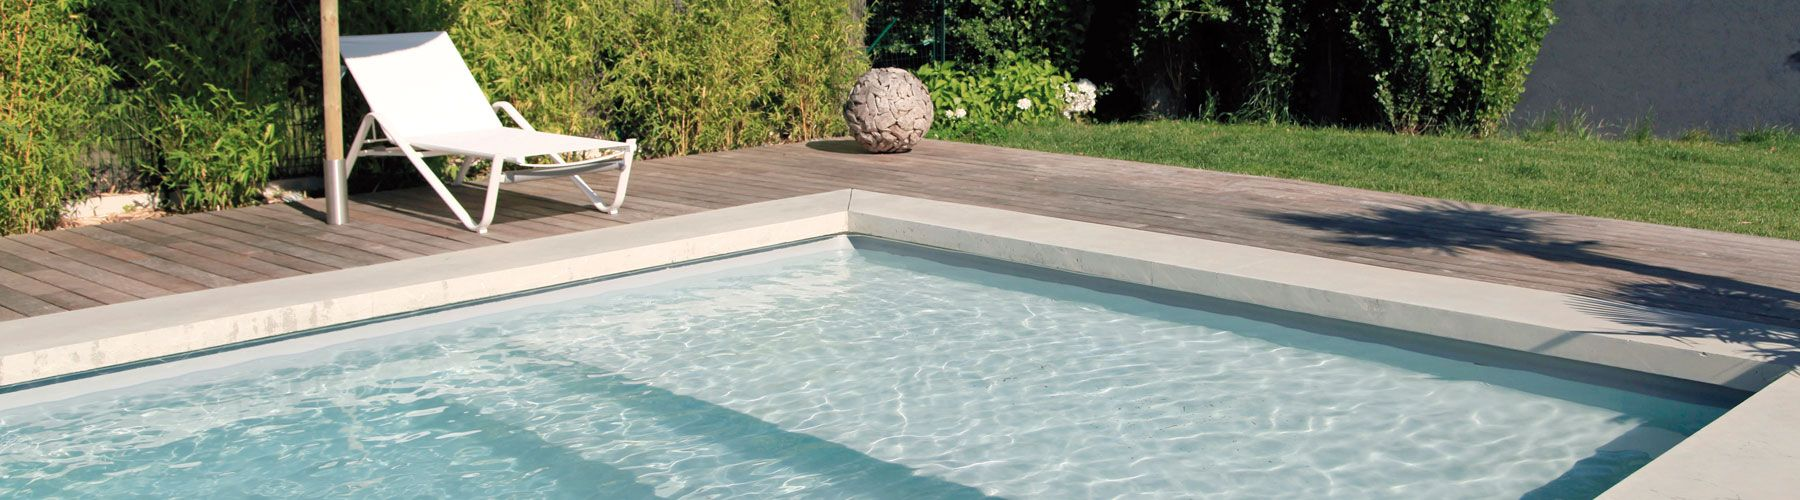 Precio piscina obra 8x4 interesting piscinas enterradas for Precio construir piscina obra